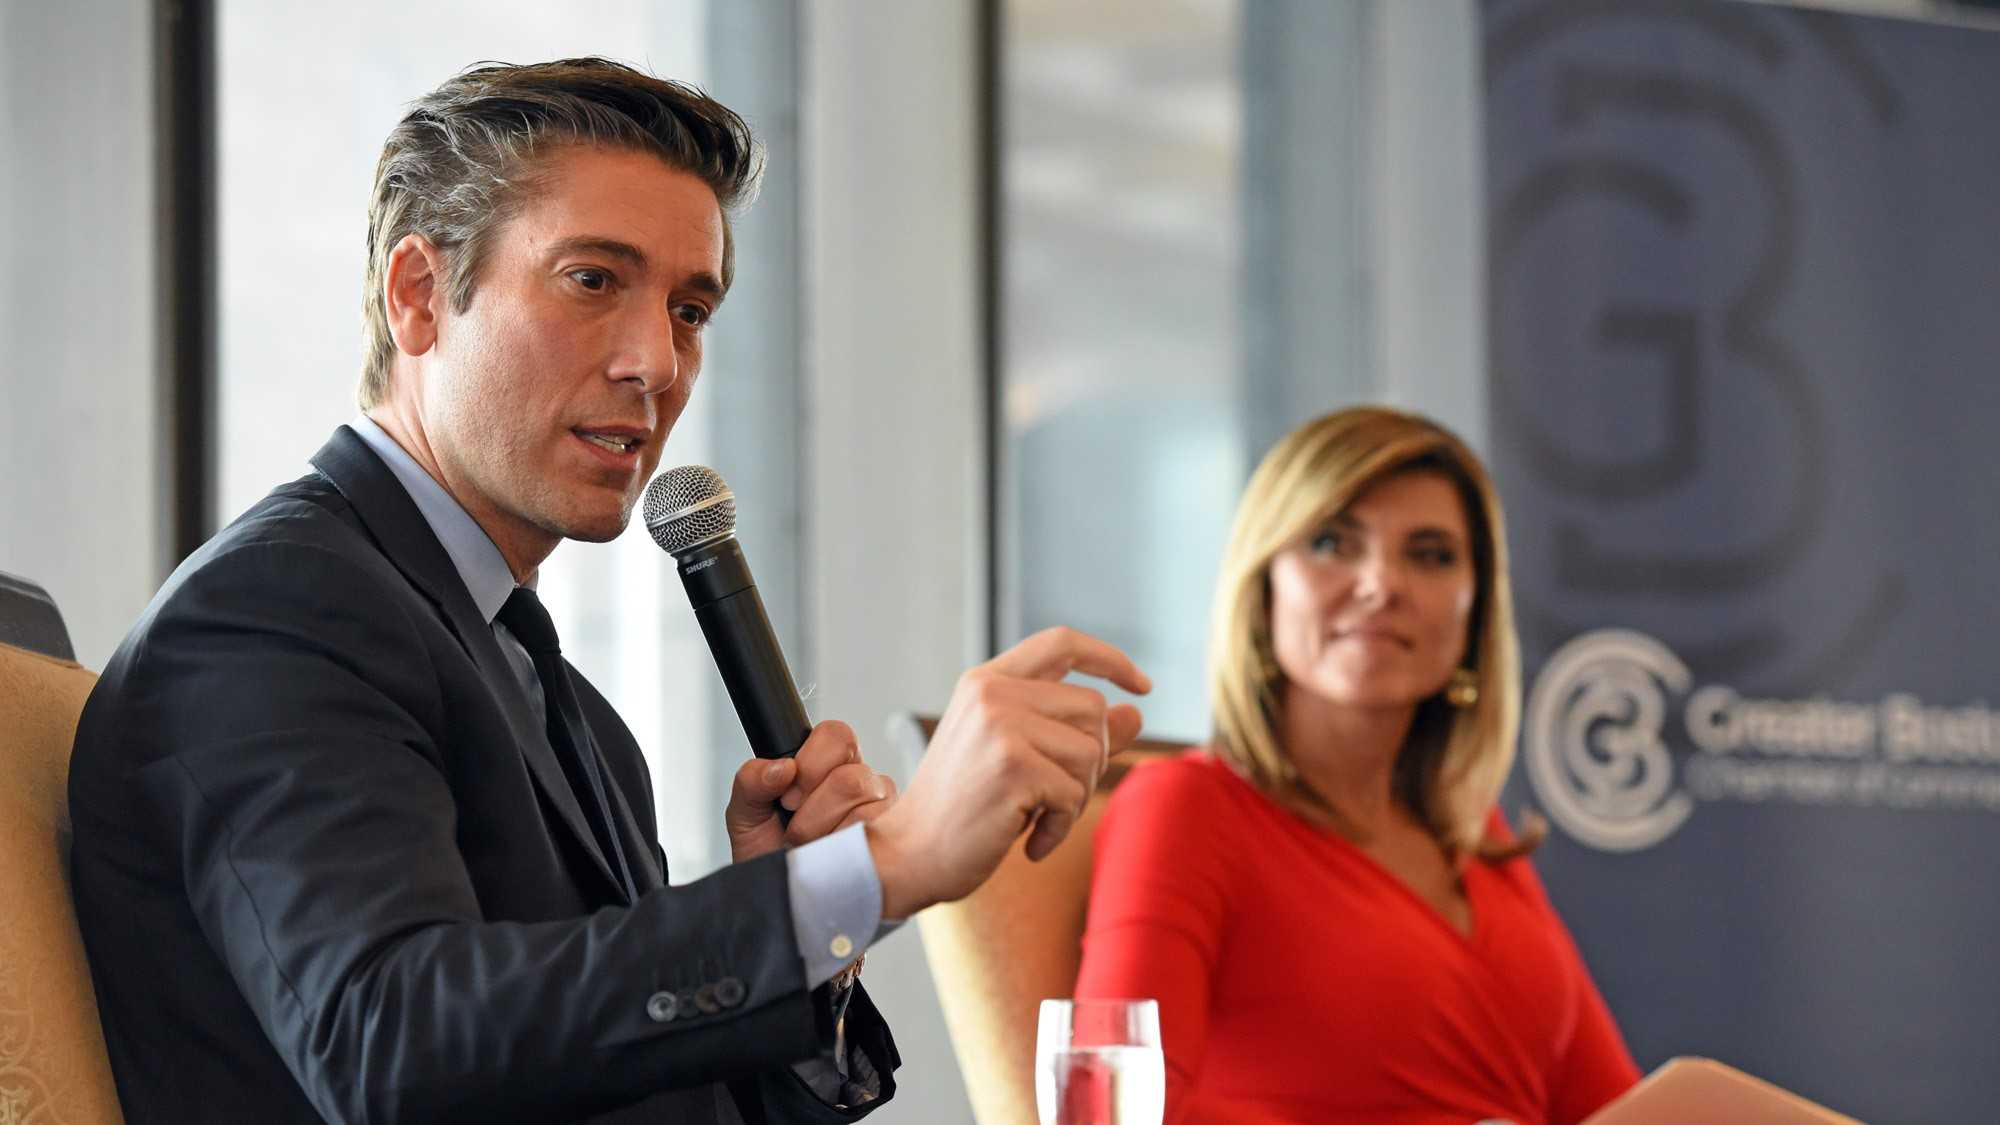 Maria Stephanos and David Muir on stage during Greater Boston Chamber of Commerce event